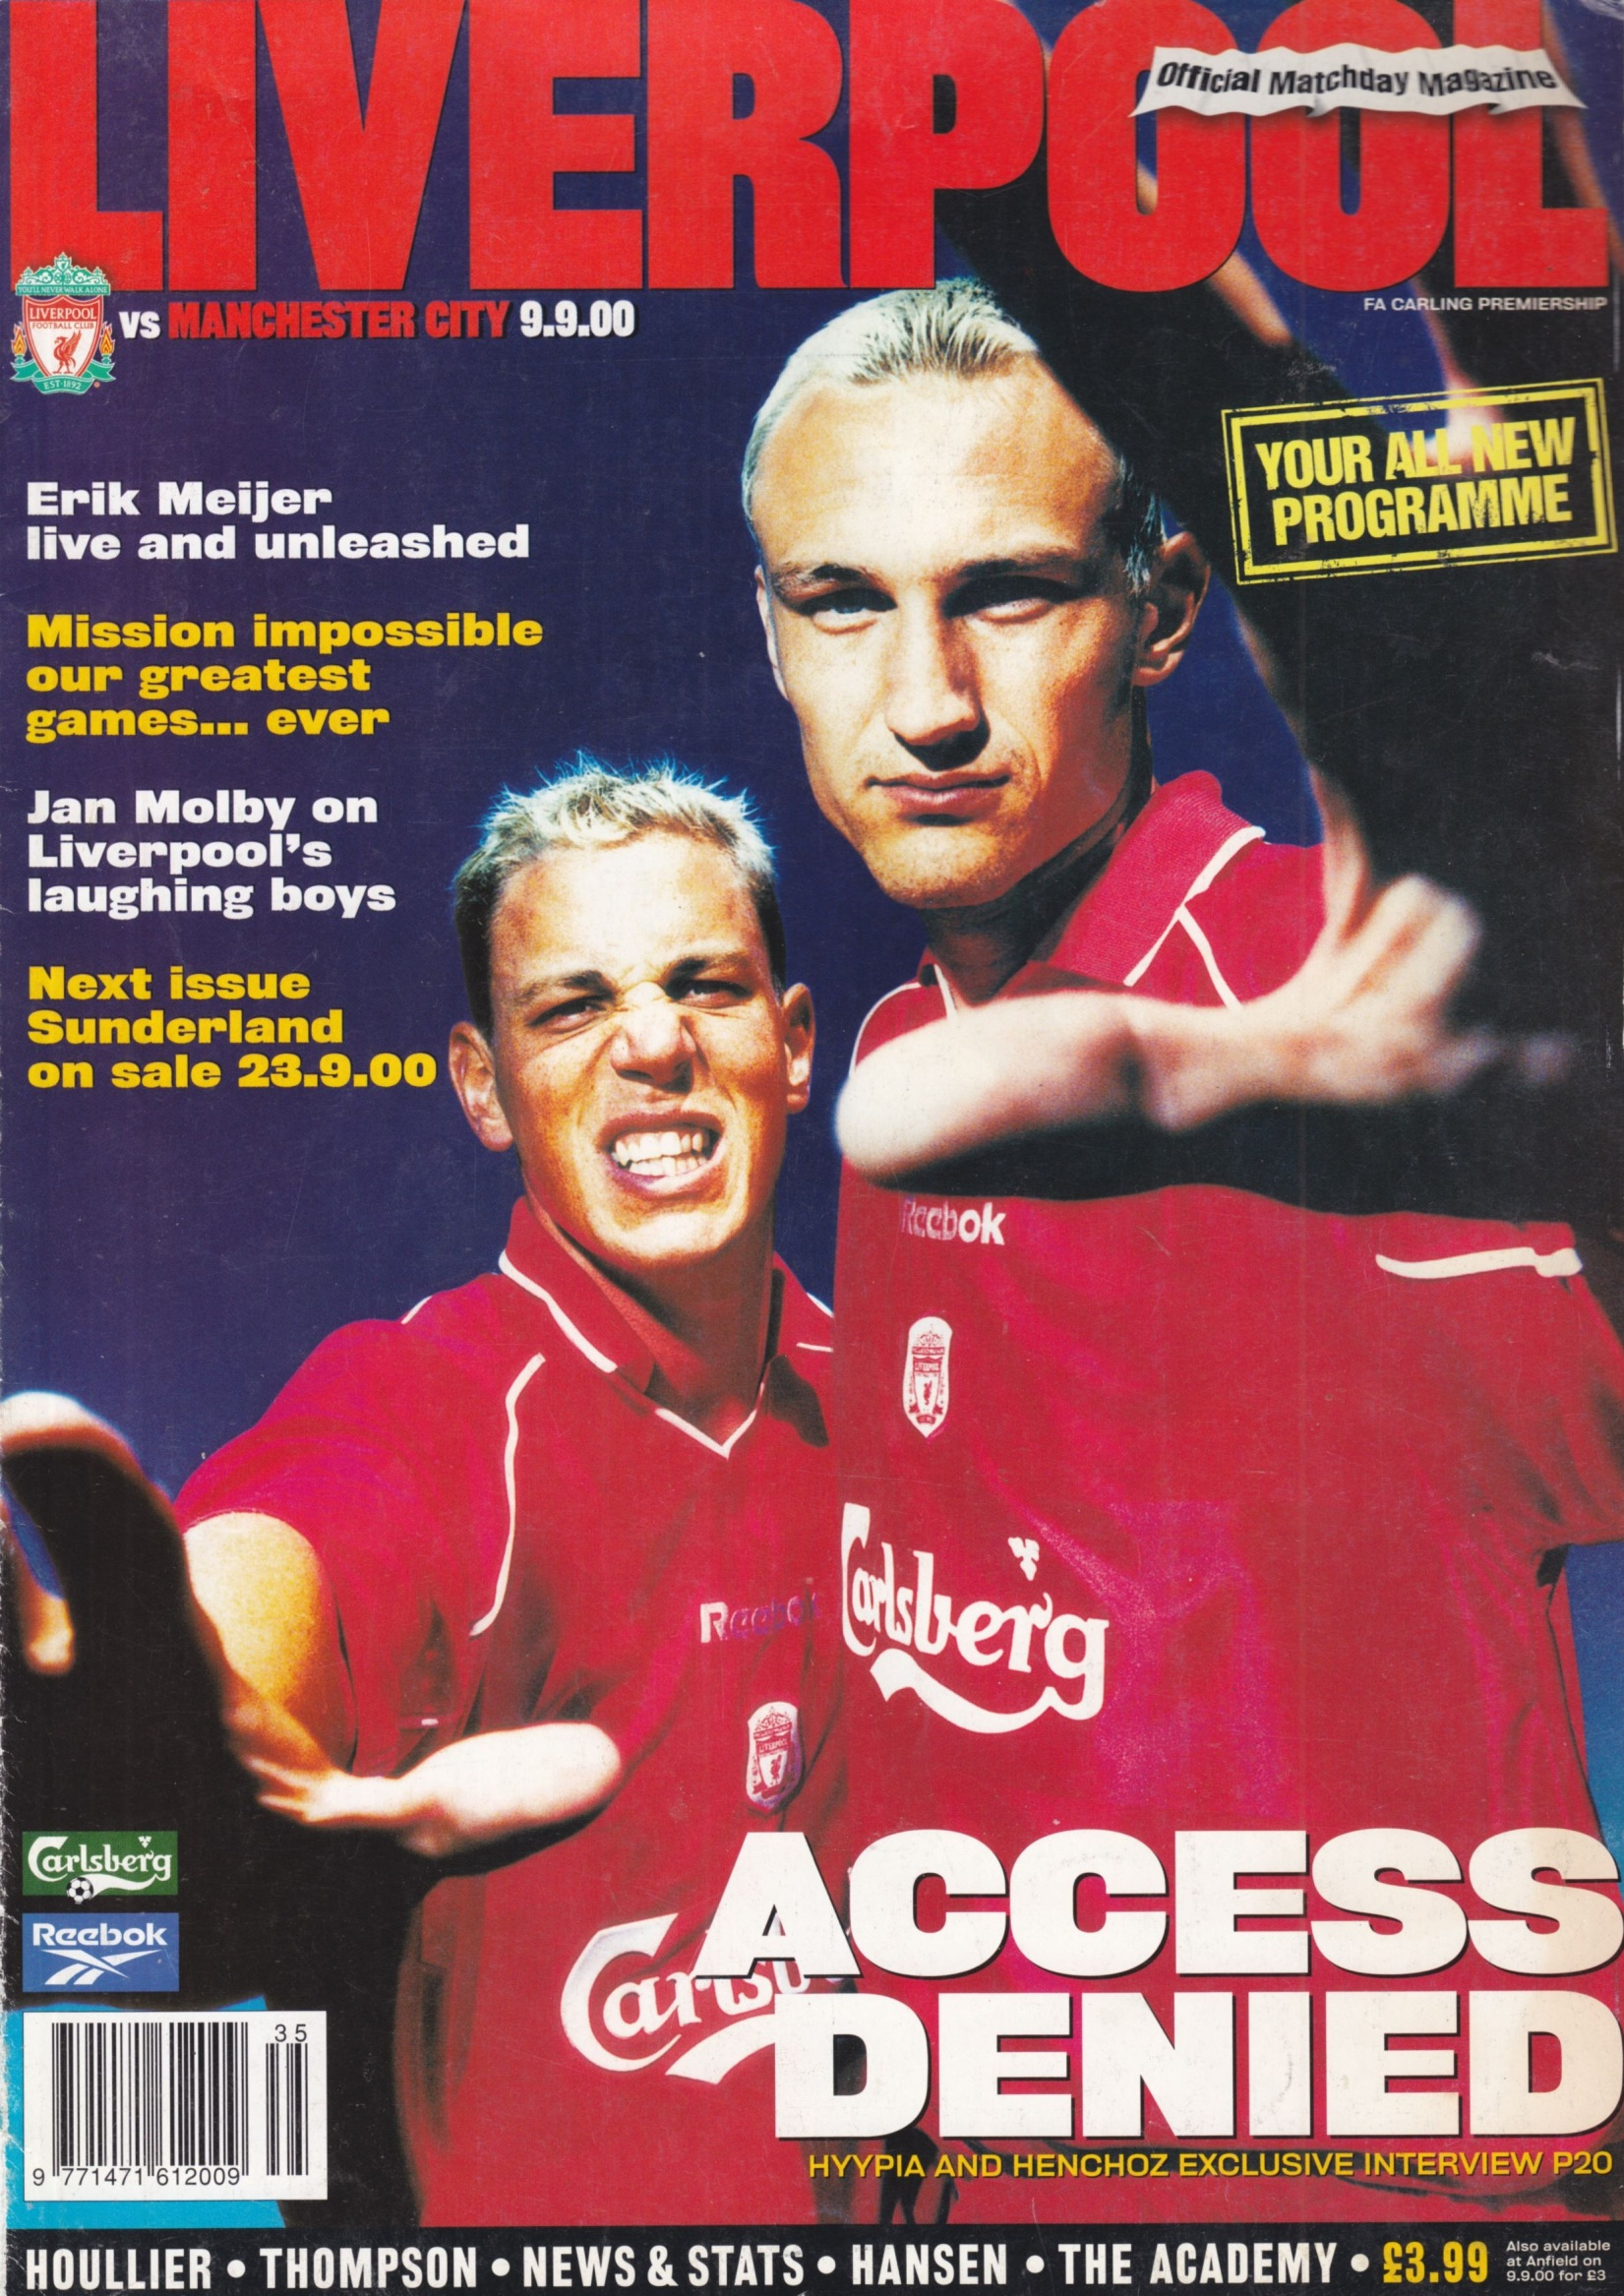 Henchoz and Sami Hyypia on the cover of the Matchday magazine 9 September 2000